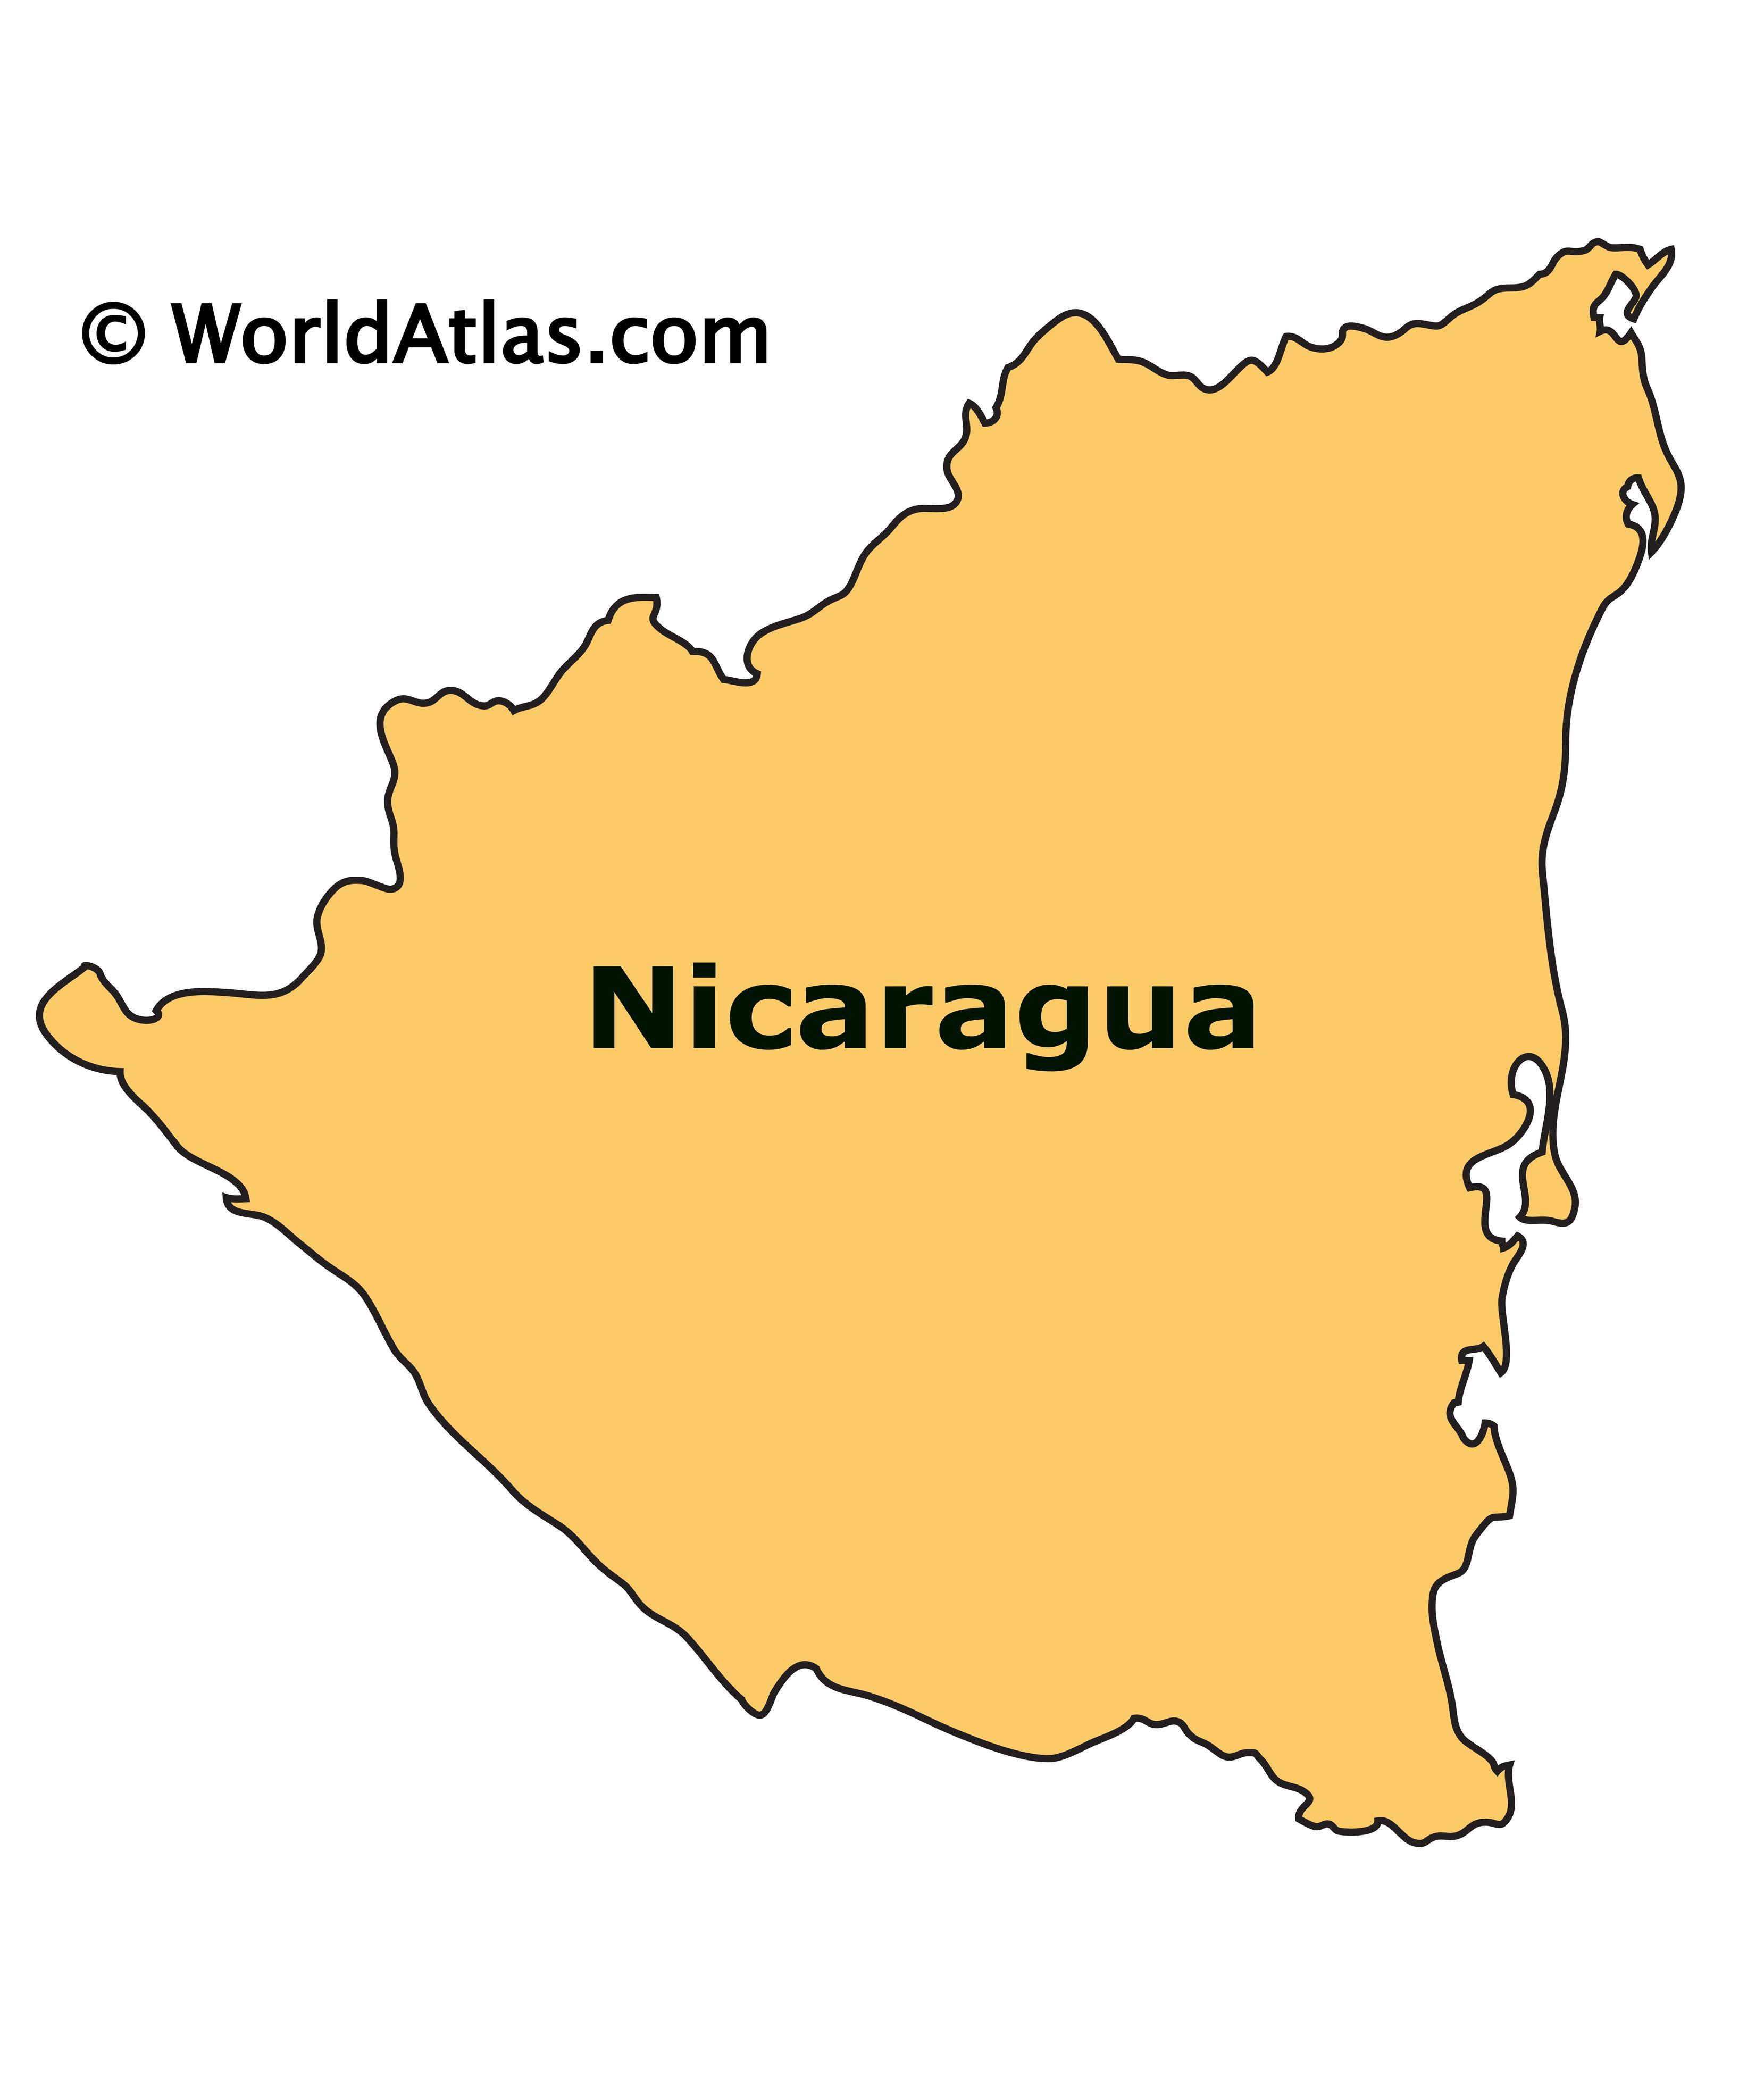 Outline Map of Nicaragua